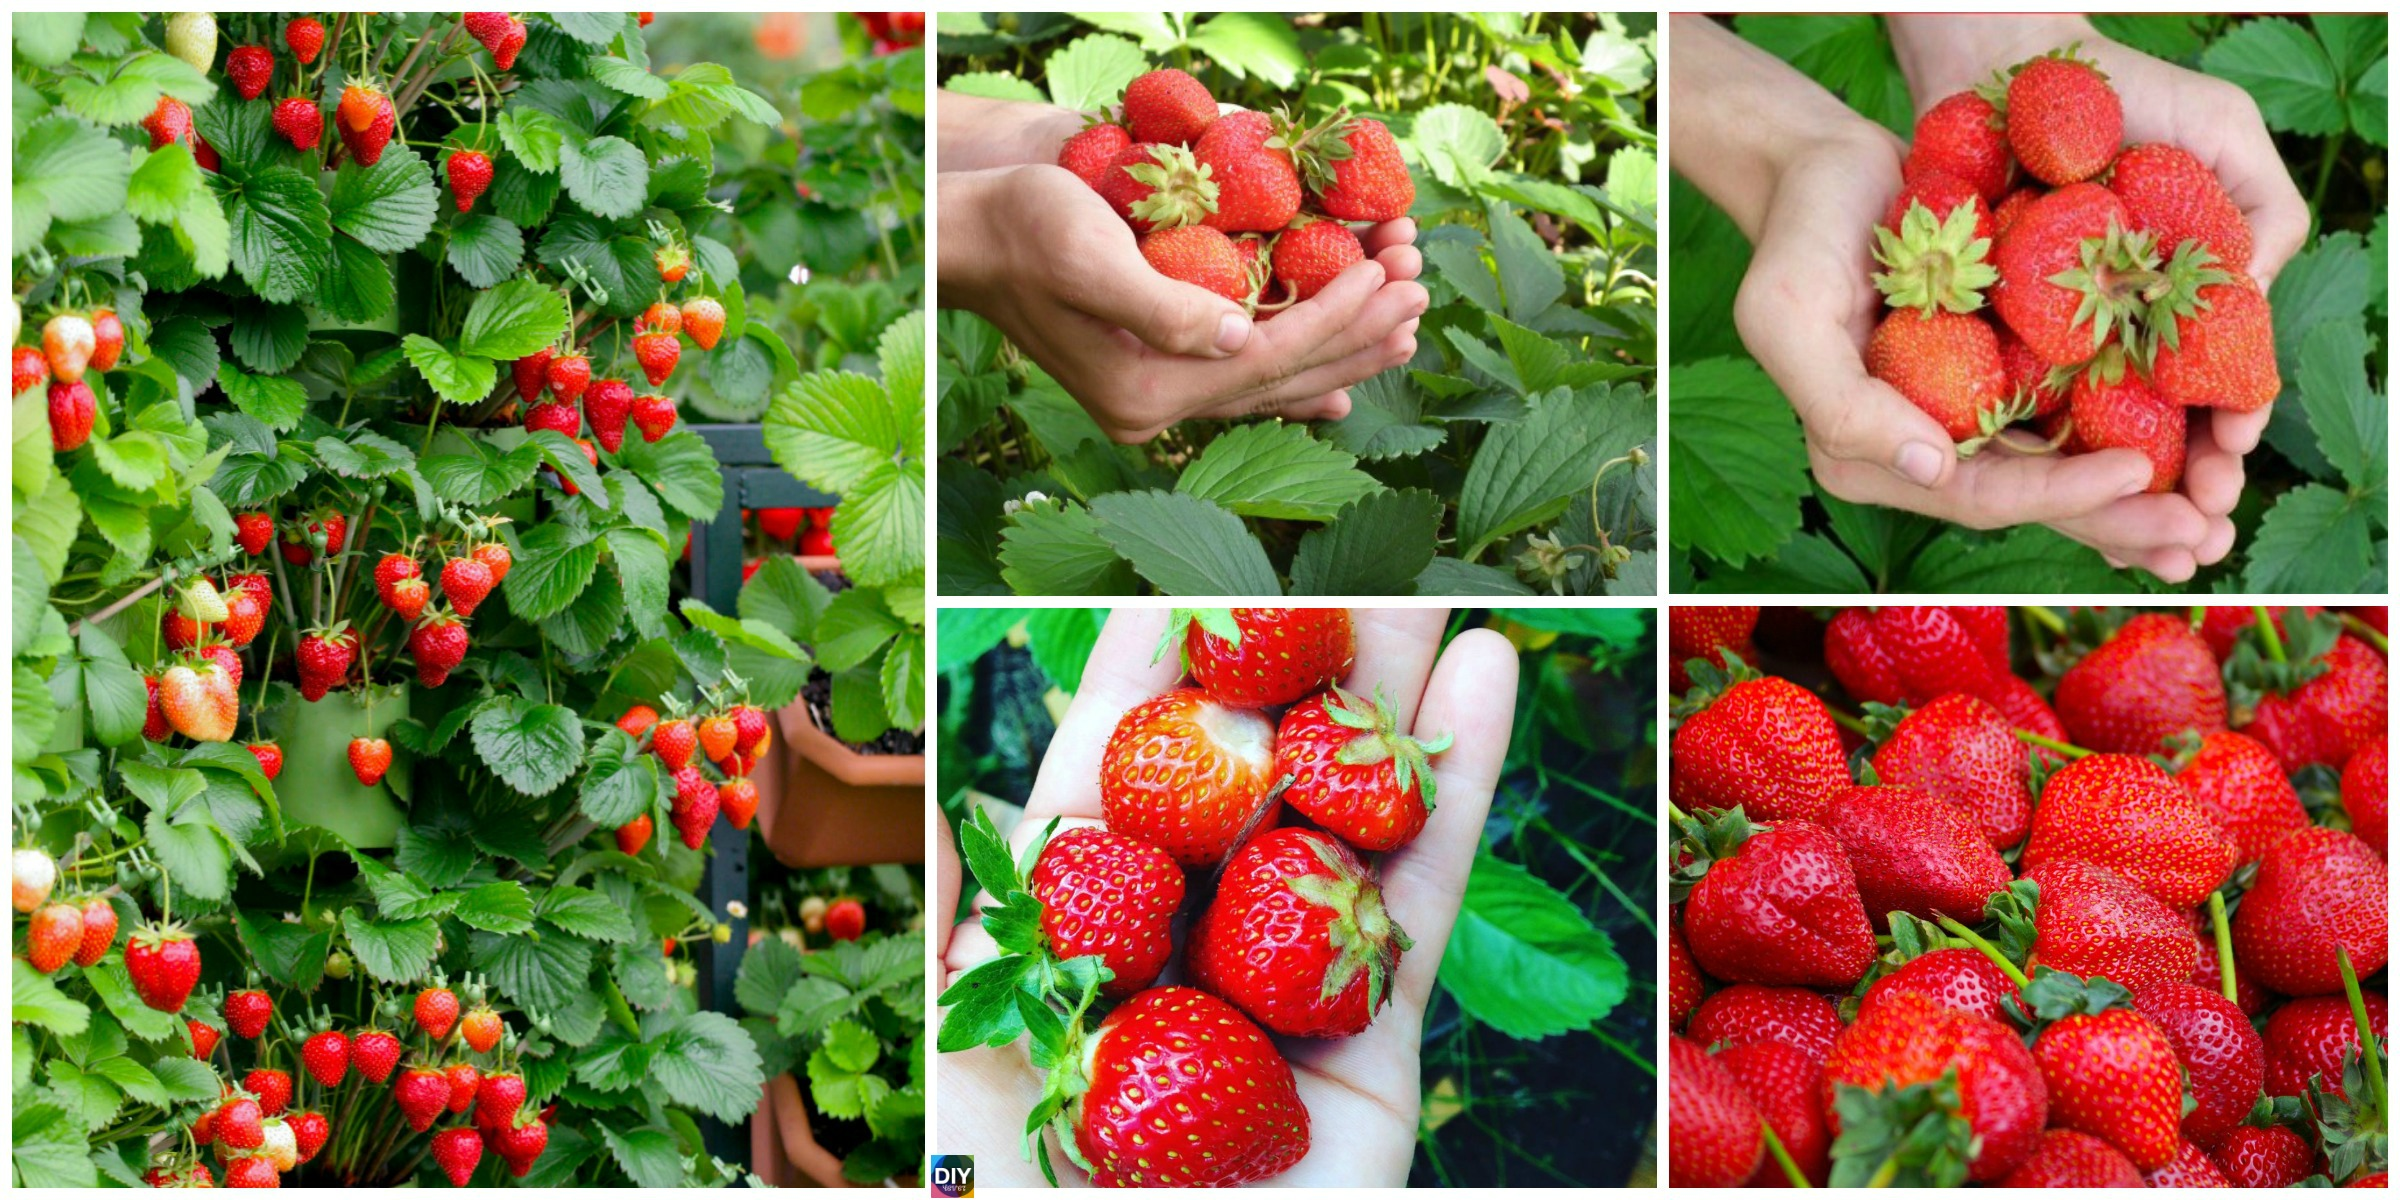 How to Grow Strawberries in Containers